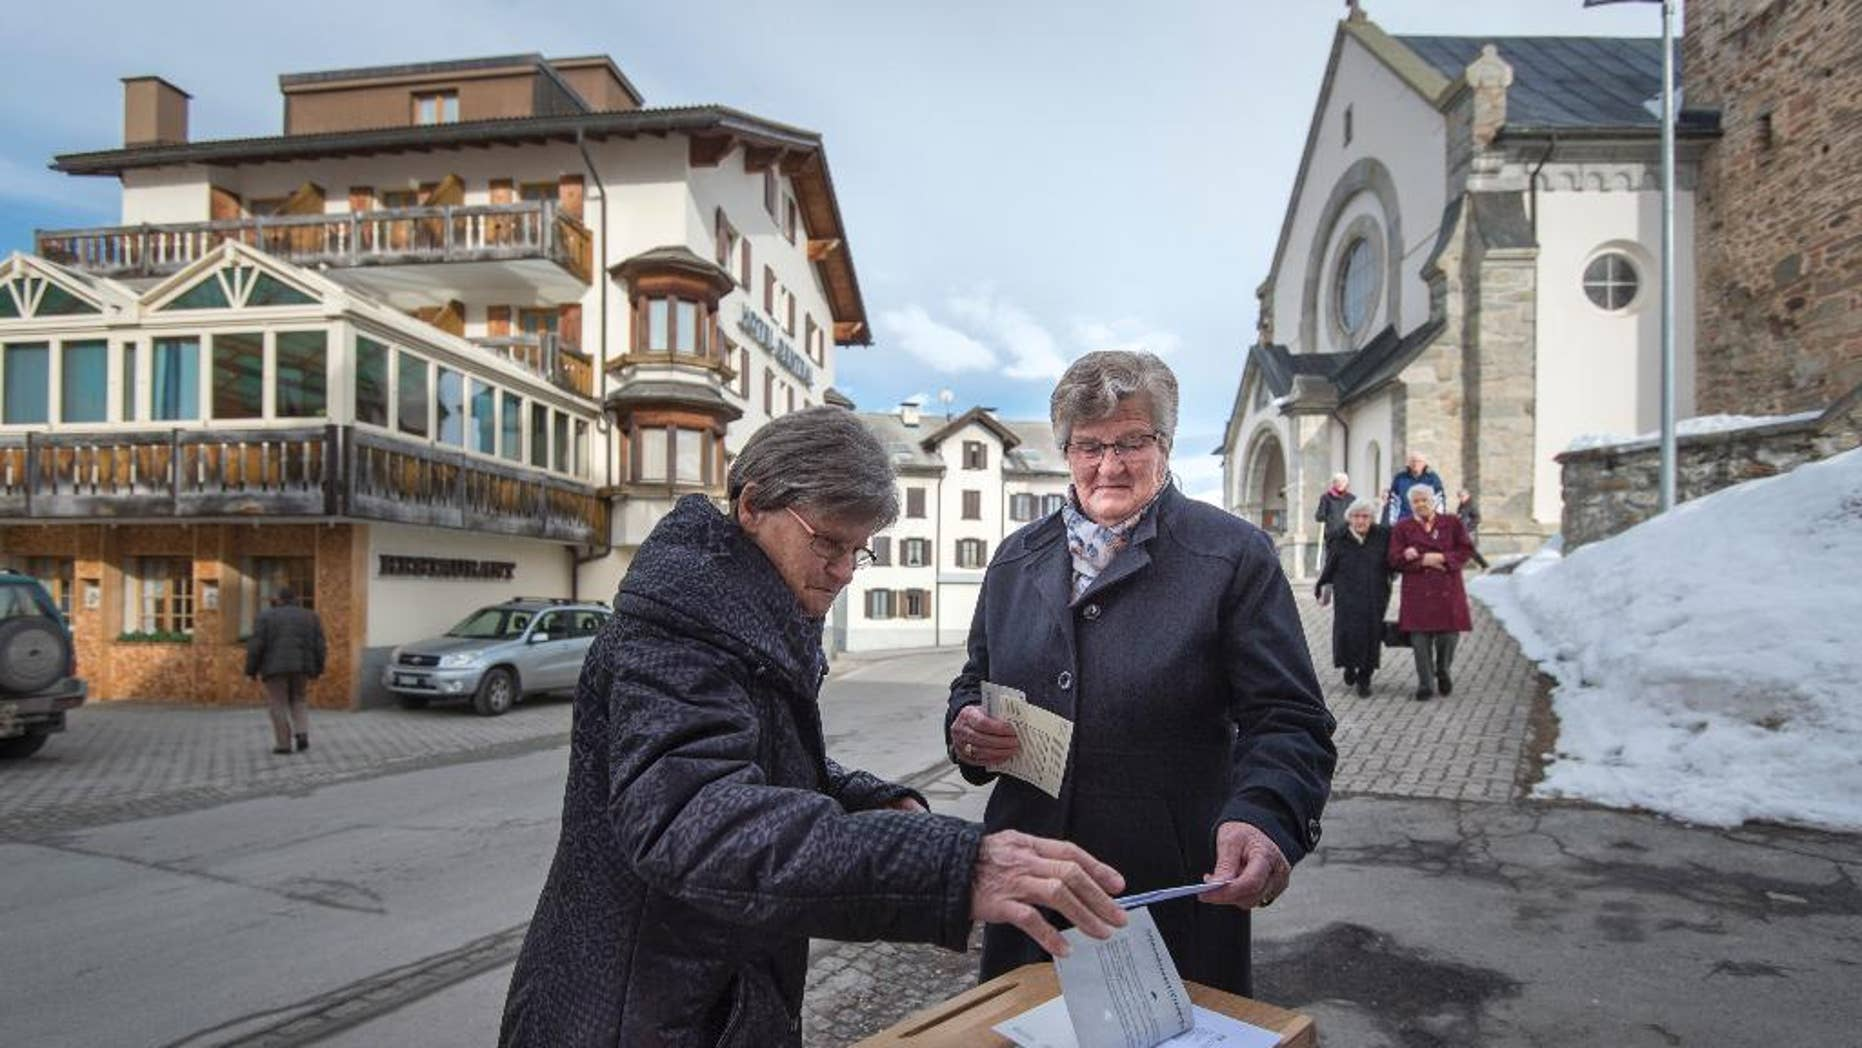 """Swiss voters cast their ballot in Obersaxen, Switzerland, Sunday Feb. 12, 2017. Swiss voters were deciding Sunday whether to make it easier for """"third-generation foreigners"""" to get Swiss citizenship and whether to lock in competitive low tax rates for foreign companies in Switzerland. (Benjamin Manser/Keystone via AP)"""